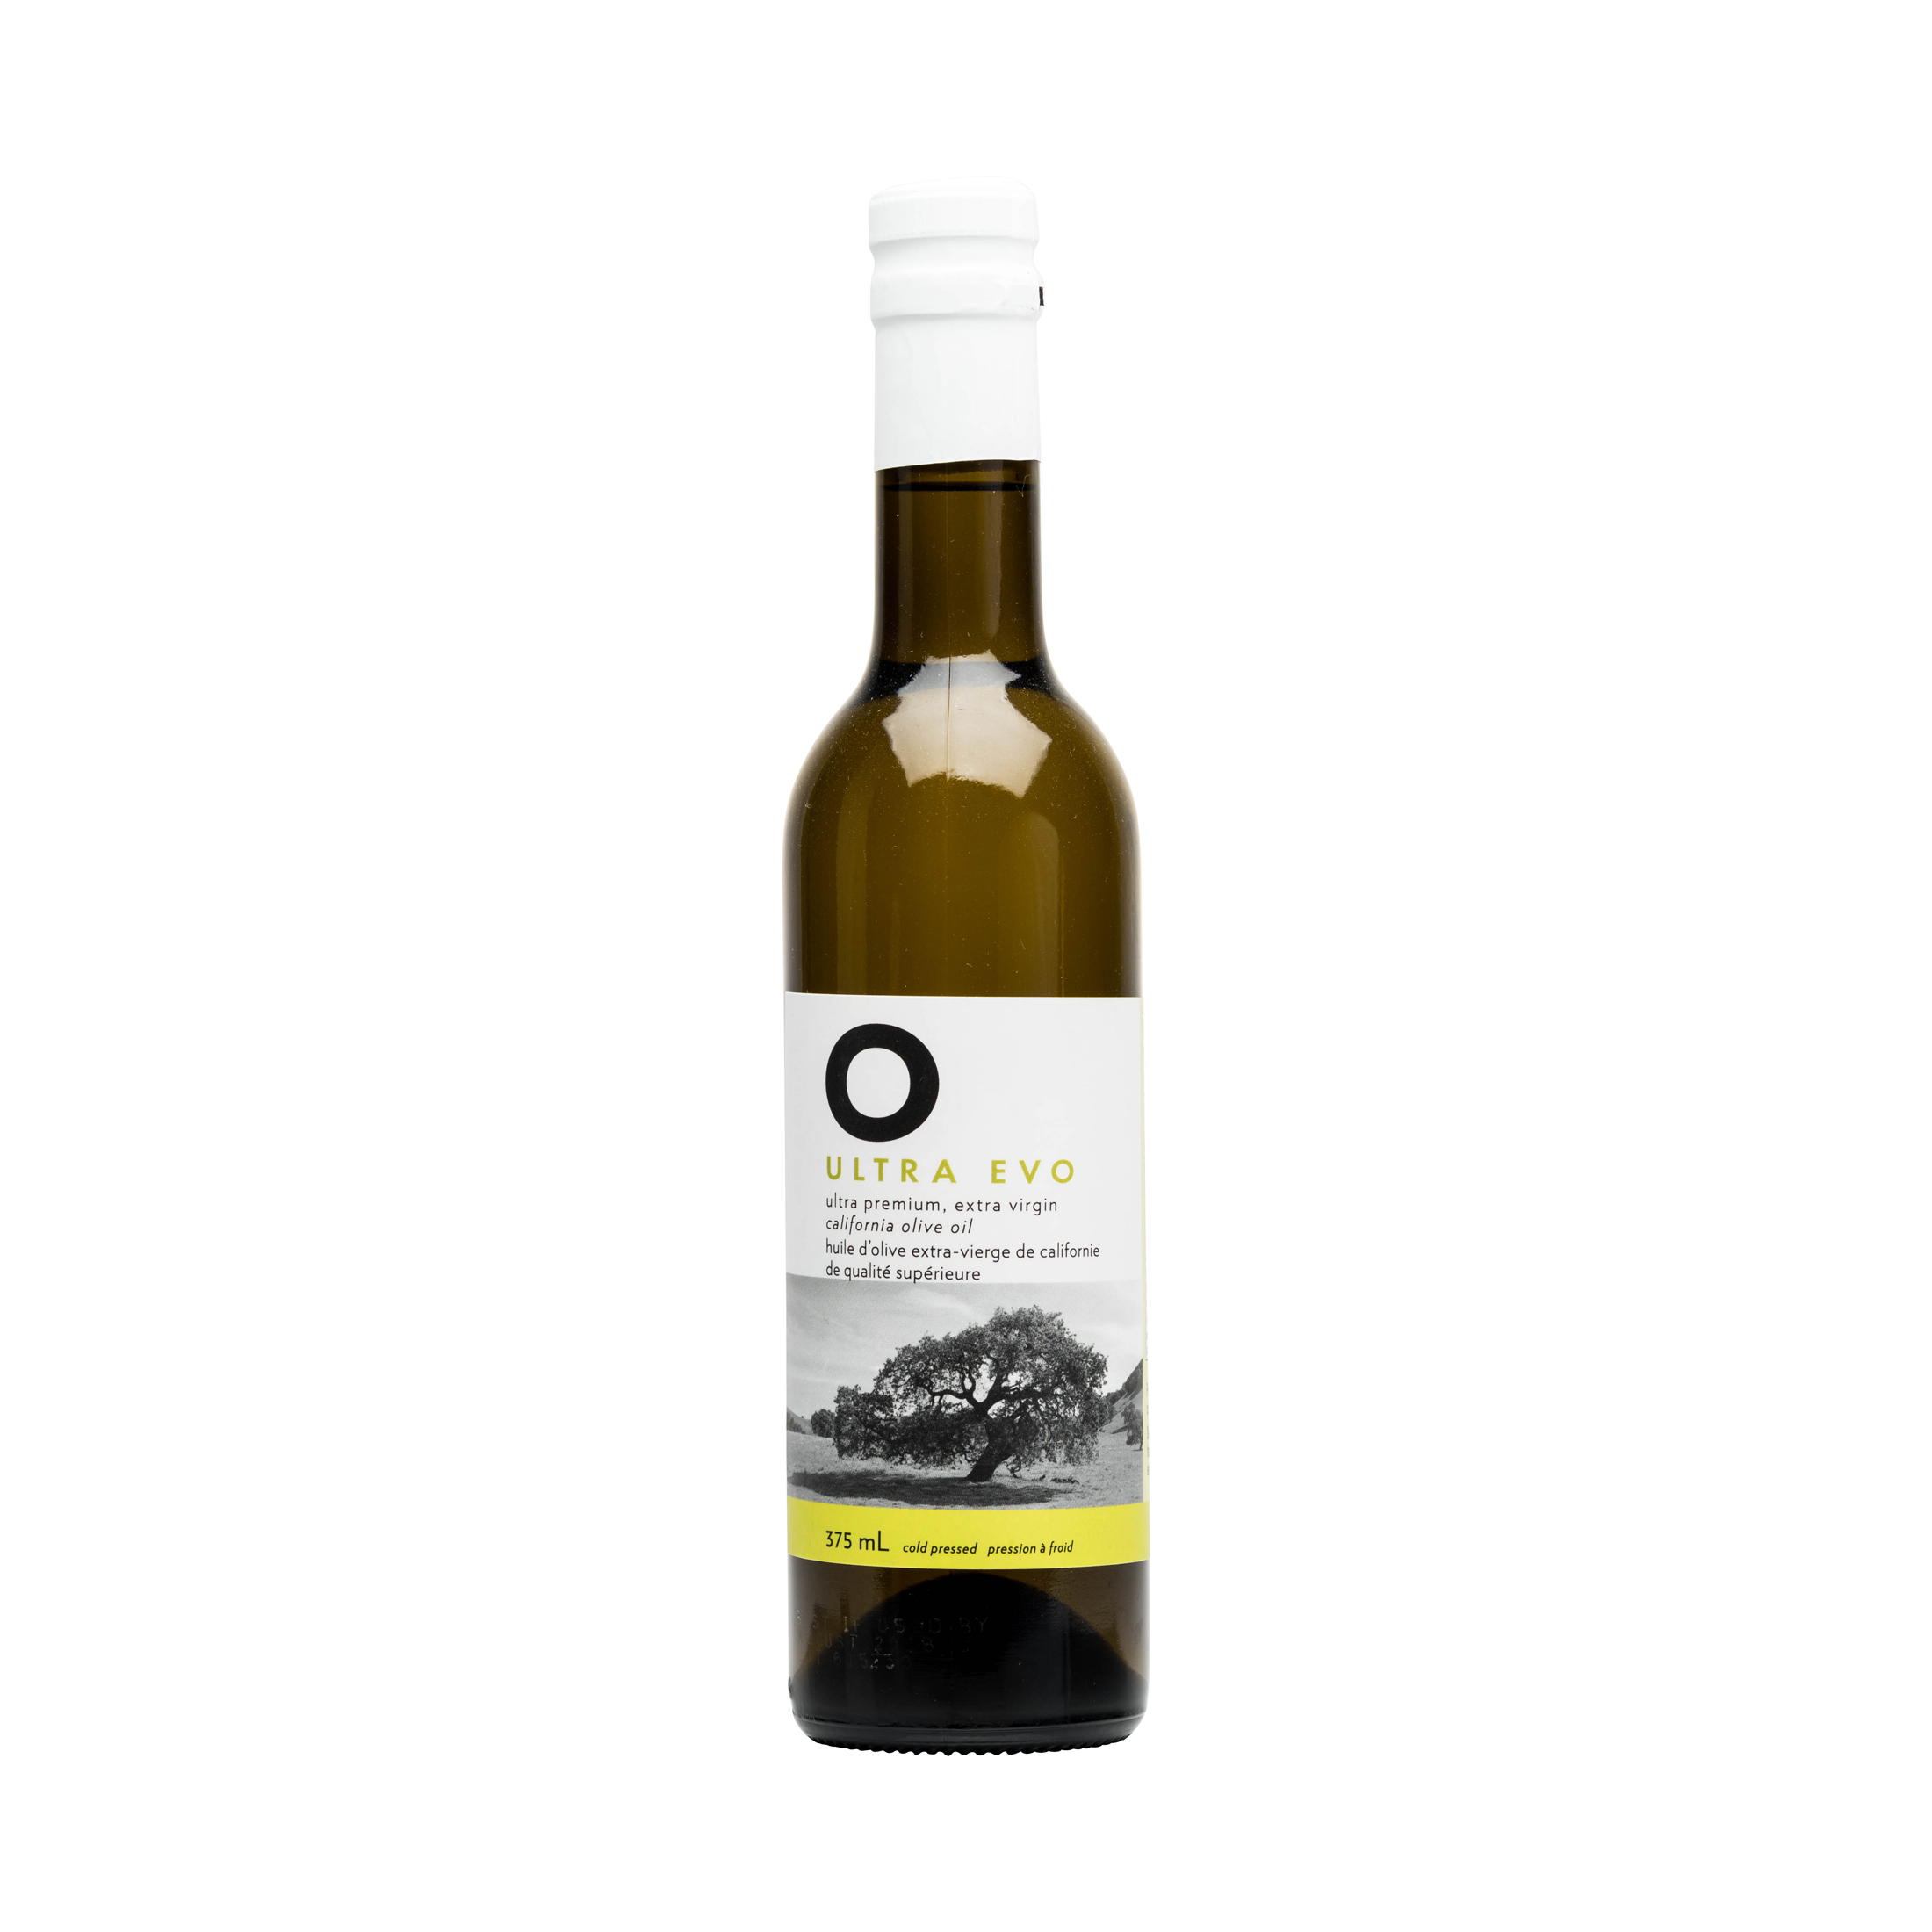 O ULTRA EVO EXTRA VIRGIN OLIVE OIL